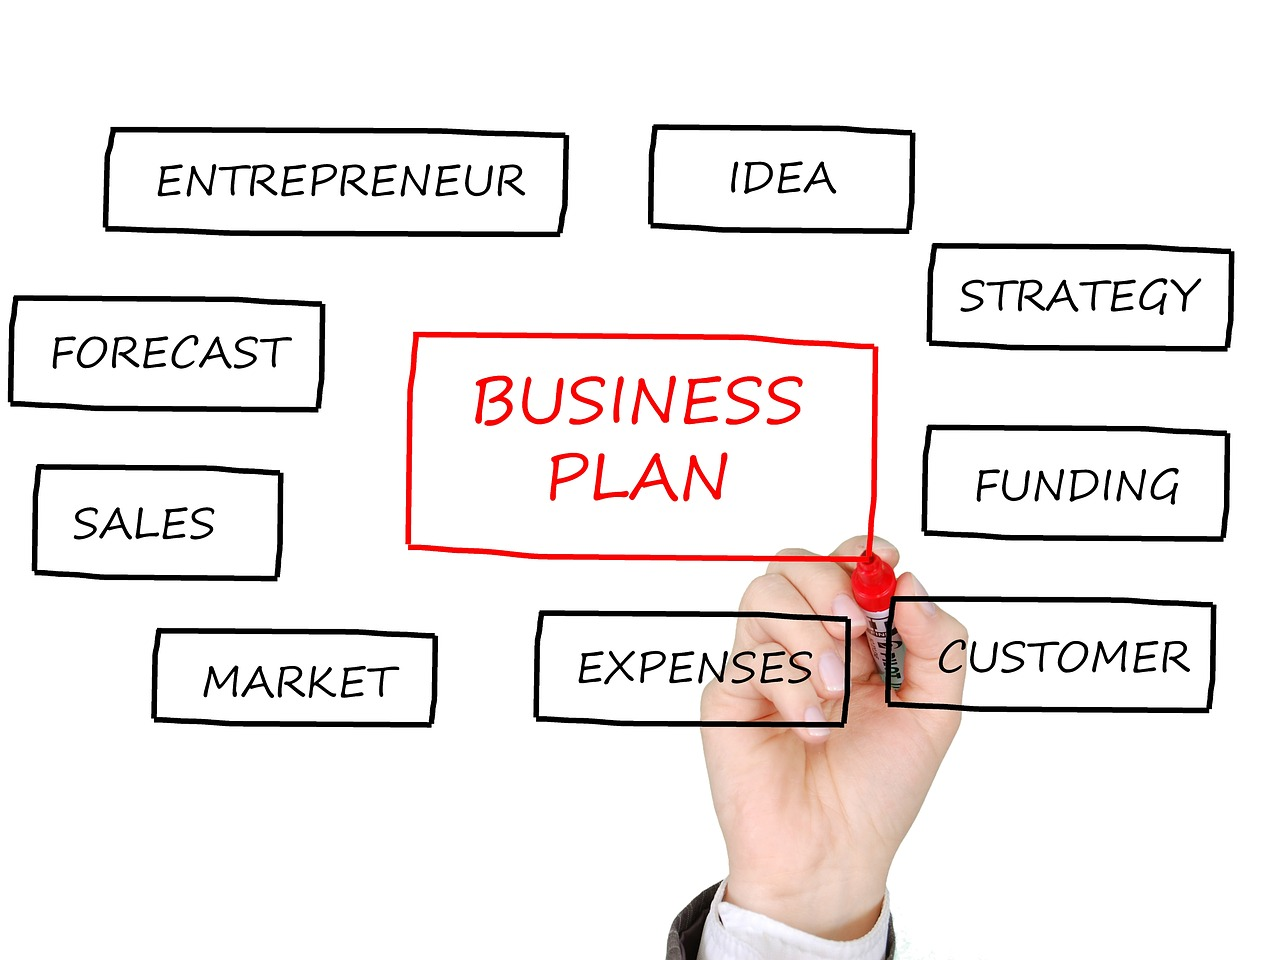 business plans and ideas